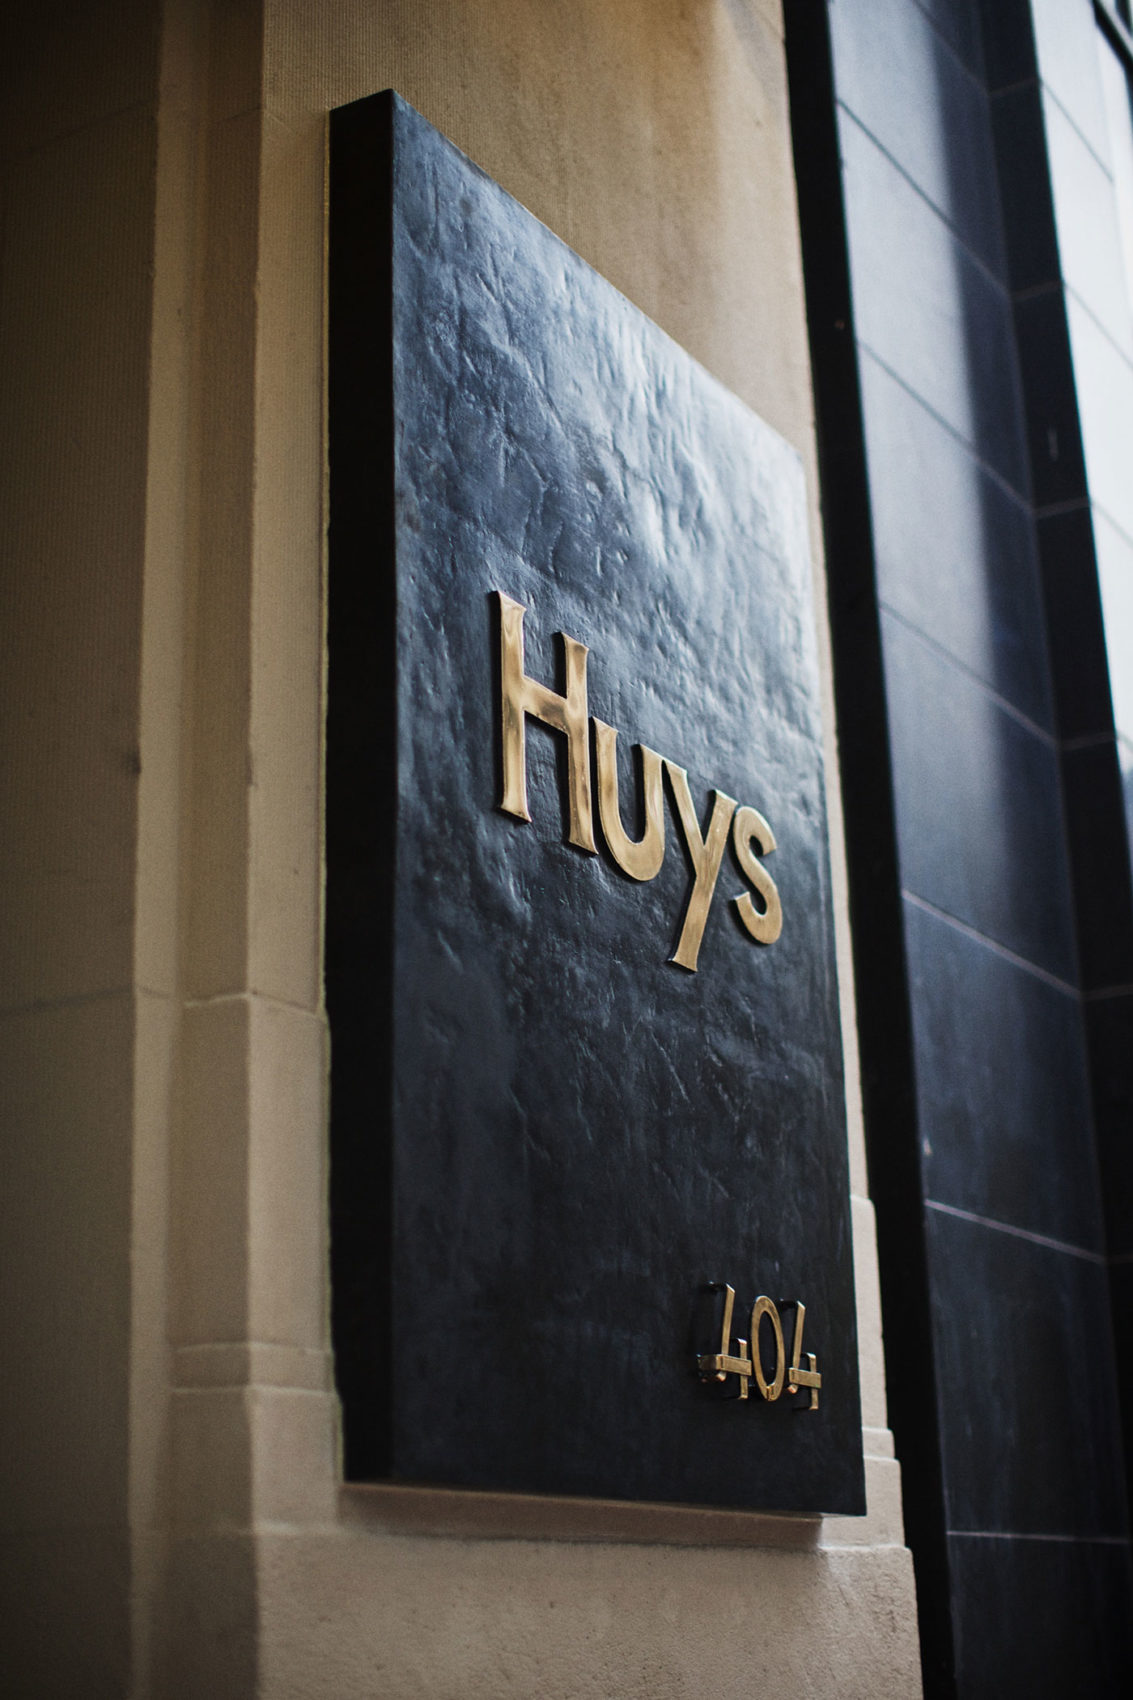 Huys 404 by Piet Boon (2)